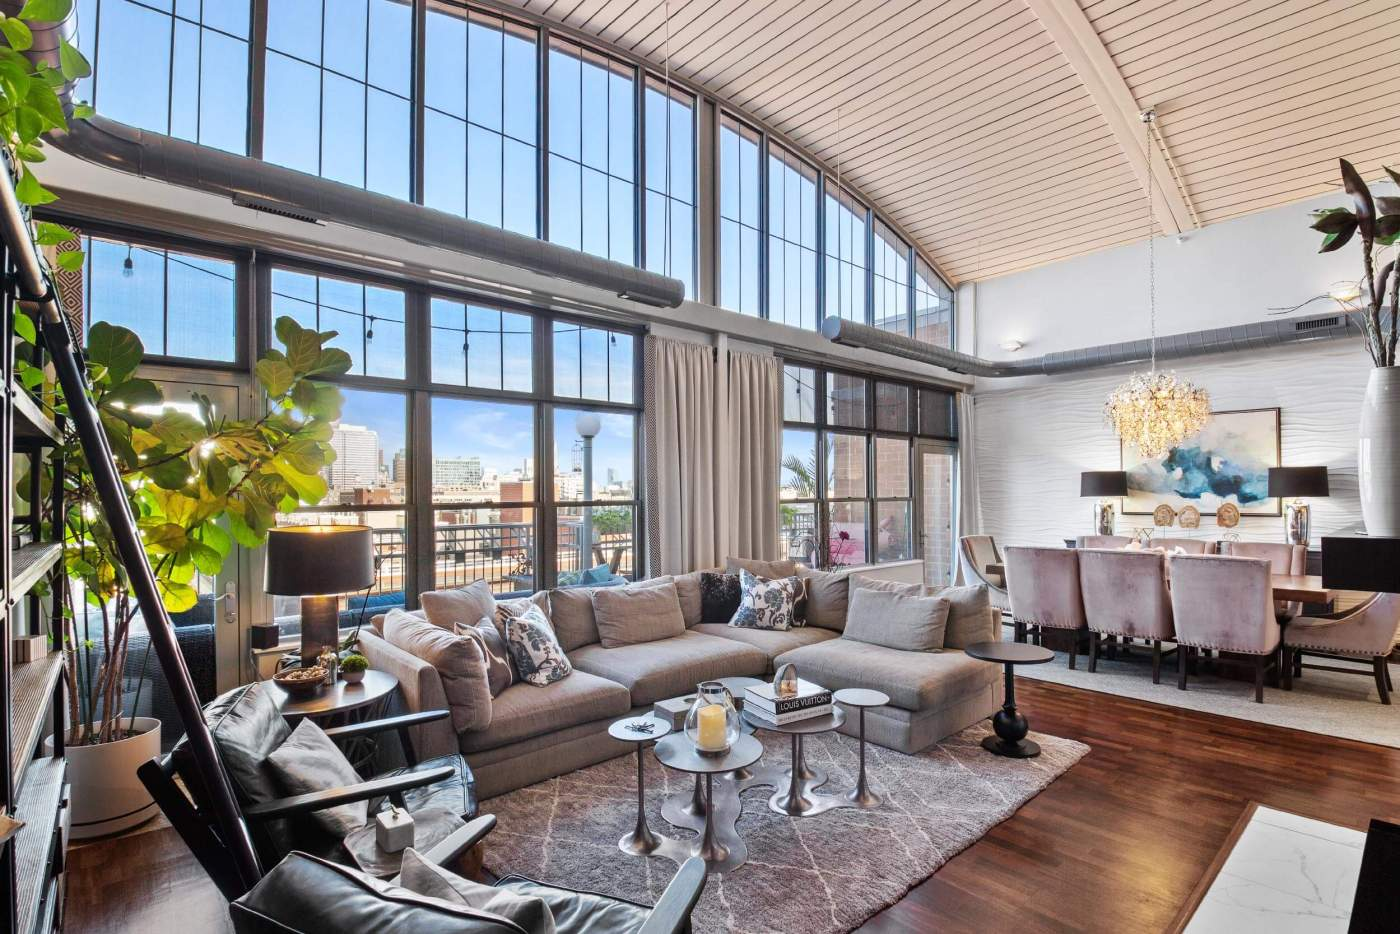 Real estate photo of the large living room with the vaulted ceiling and high windows with the views of the Chicago downtown